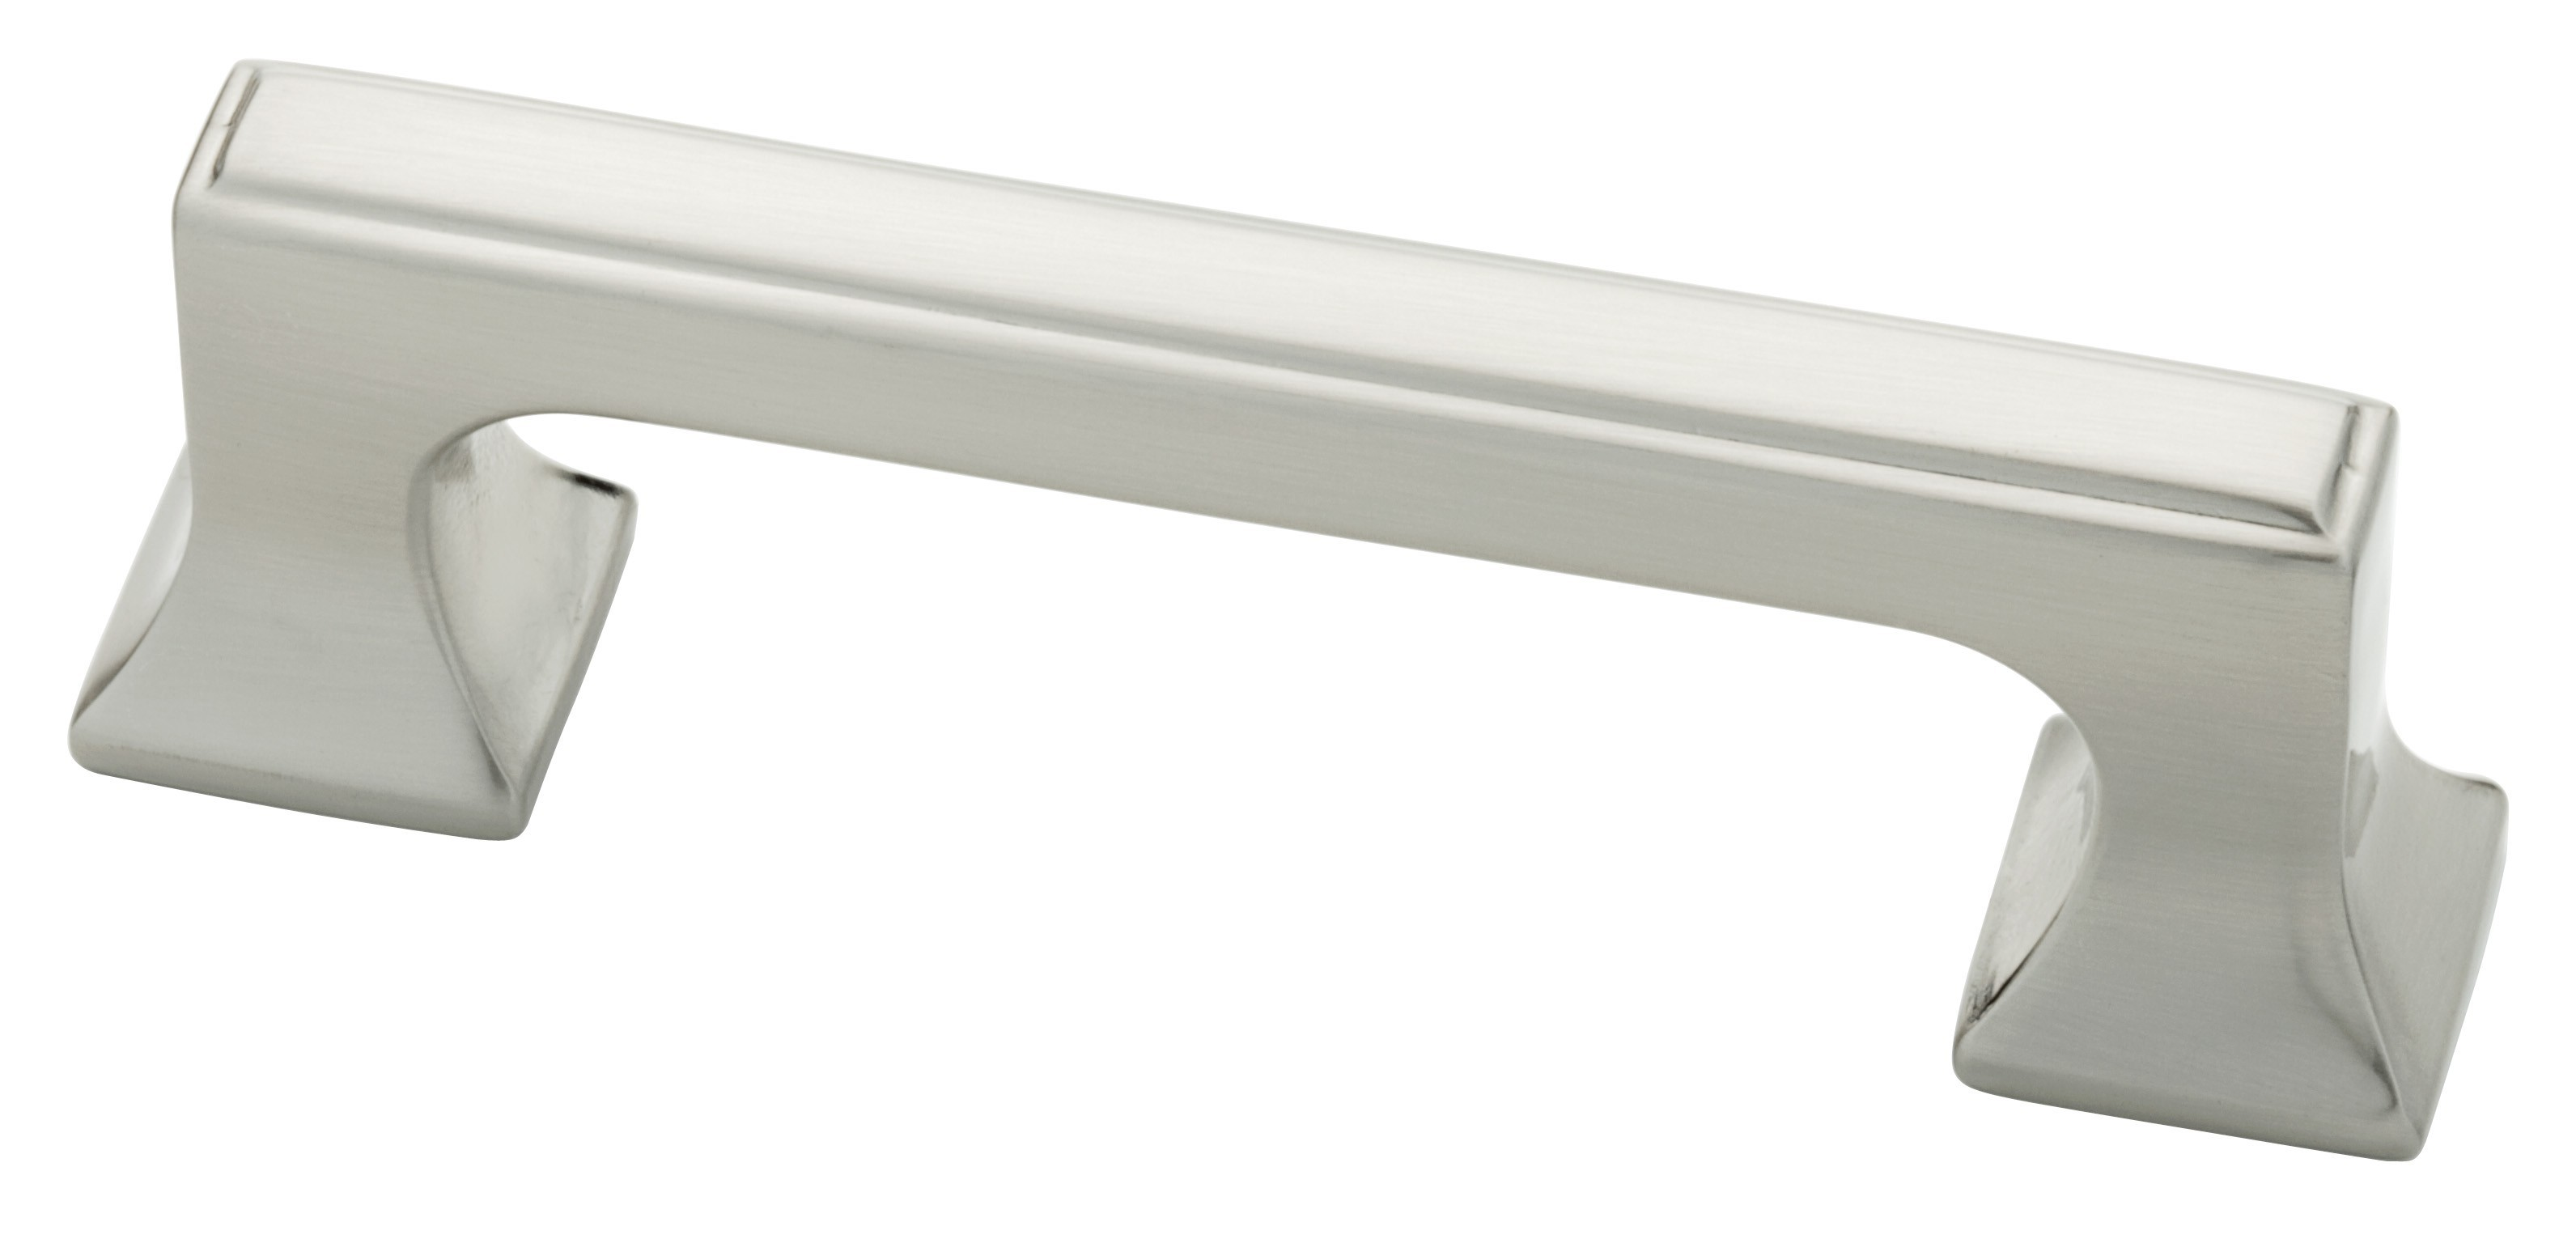 Liberty Hardware P20383-SN-C, 3in Pull With Square Feet, Zinc Die Cast Pull, Satin Nickel